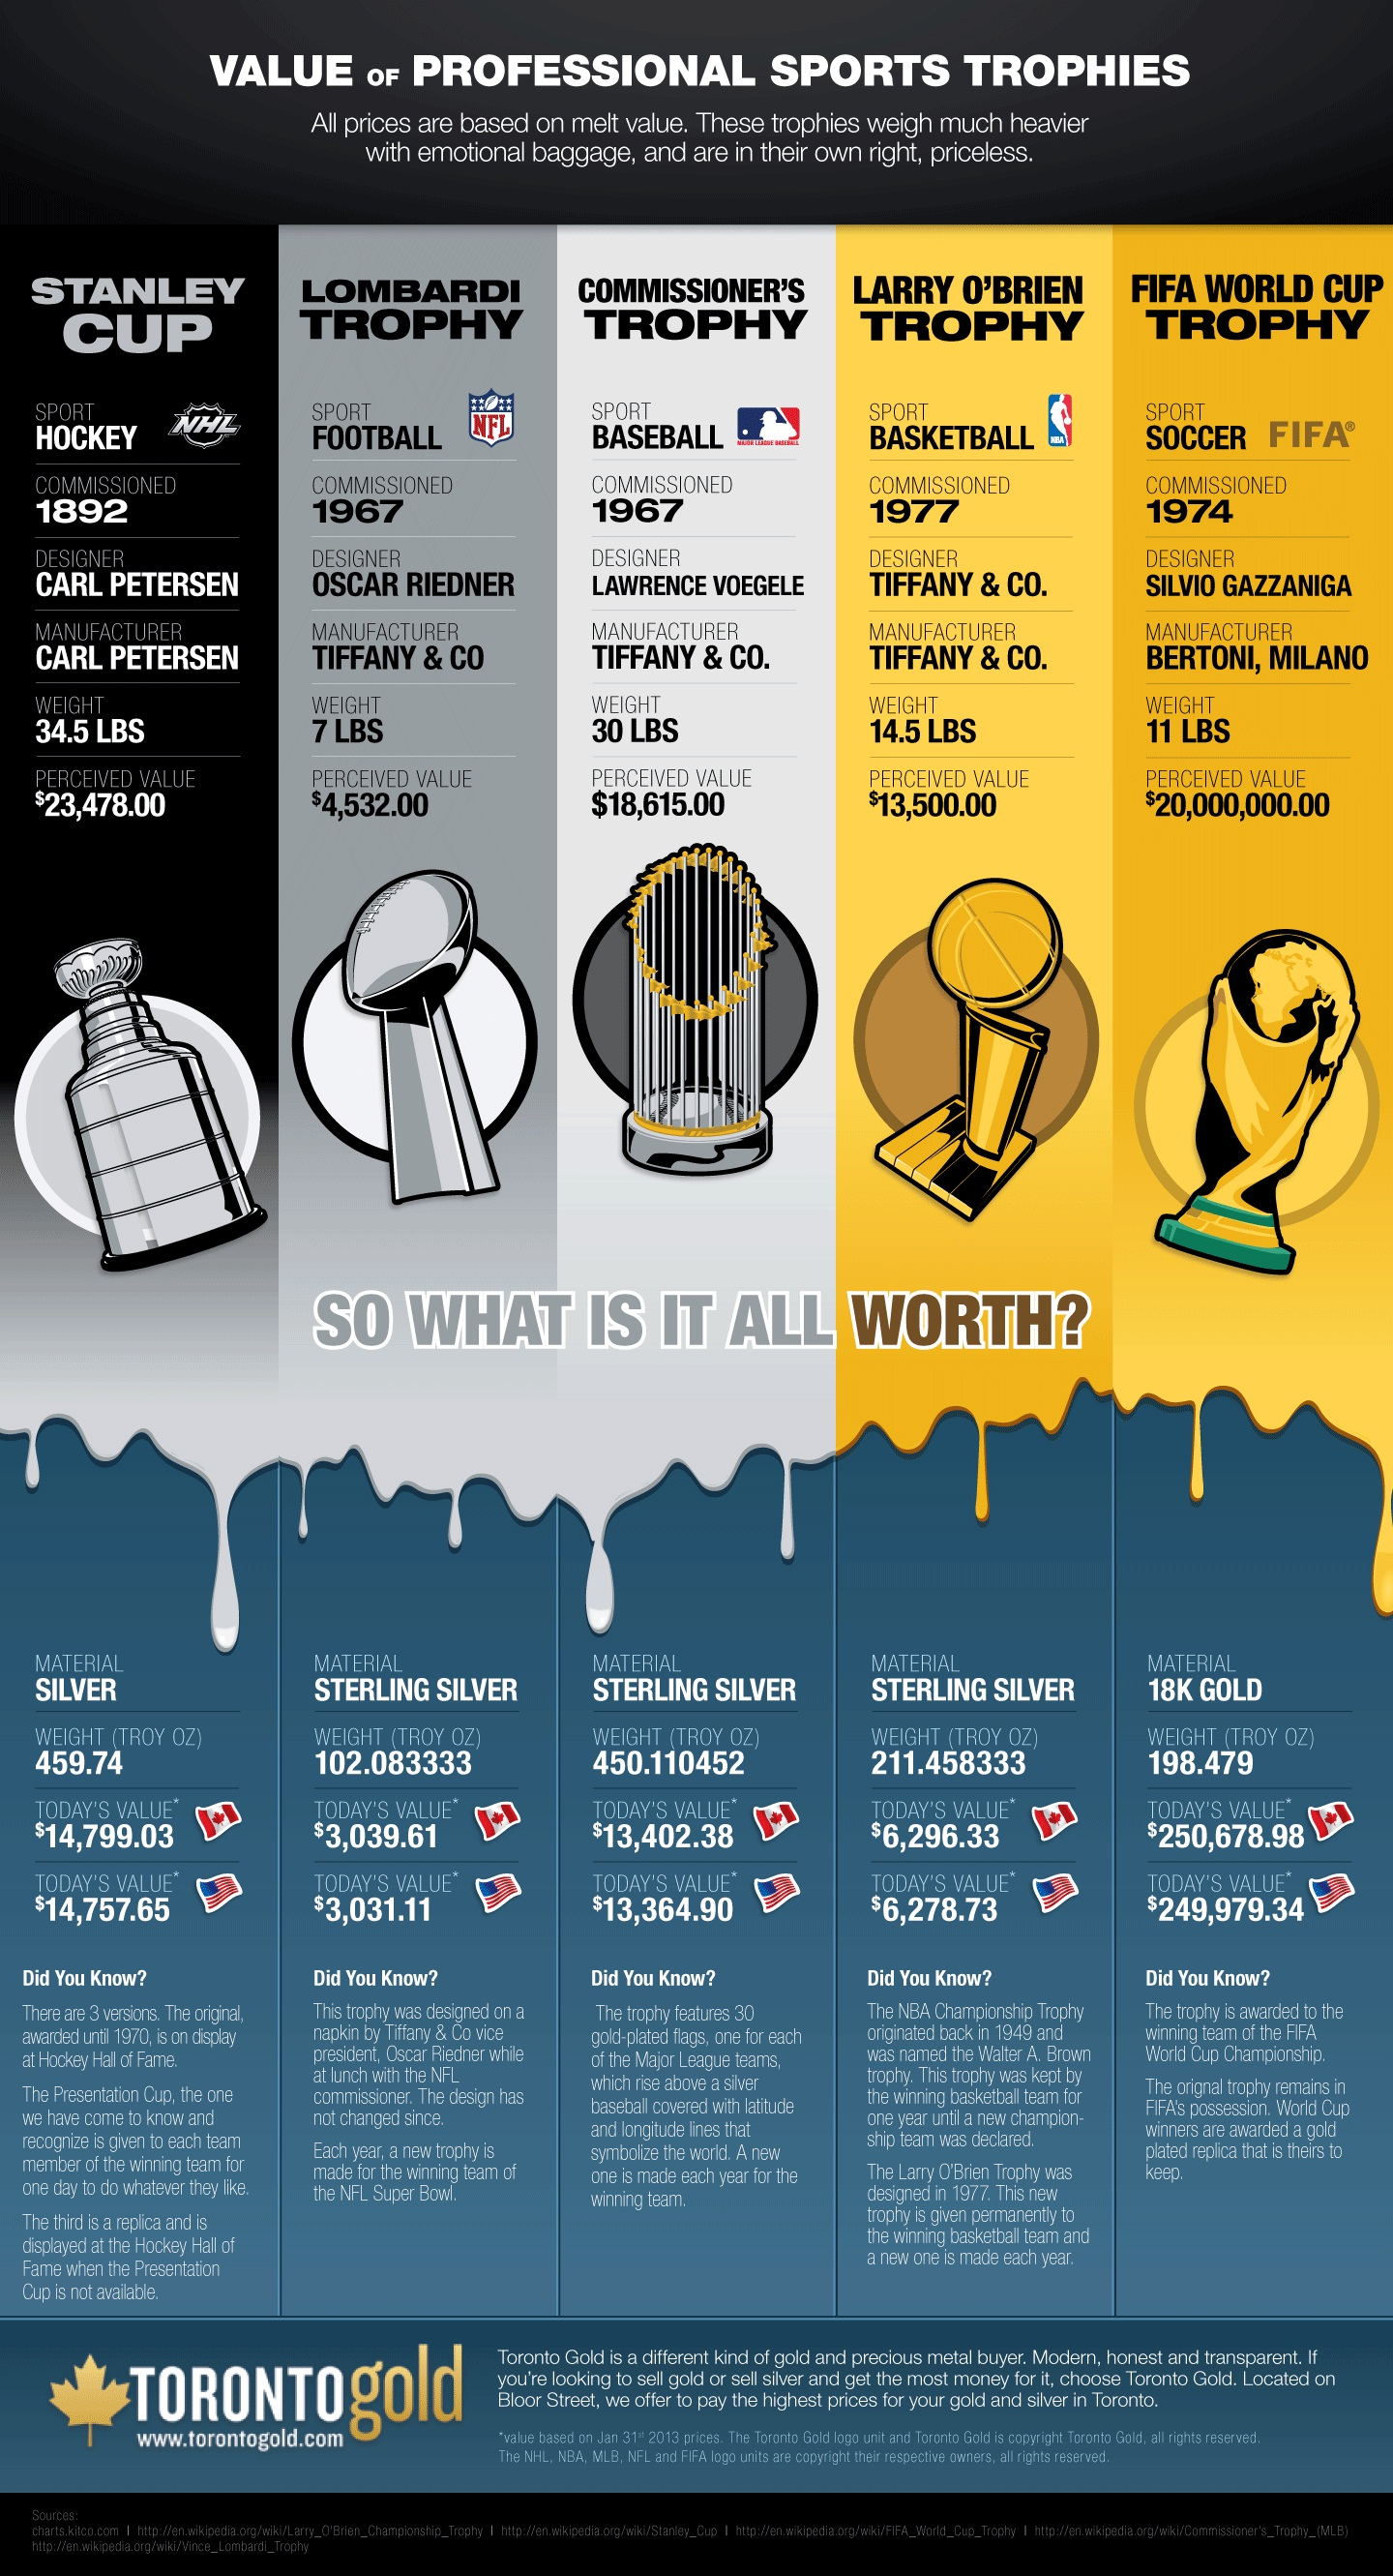 Value of Professional Sports Trophies